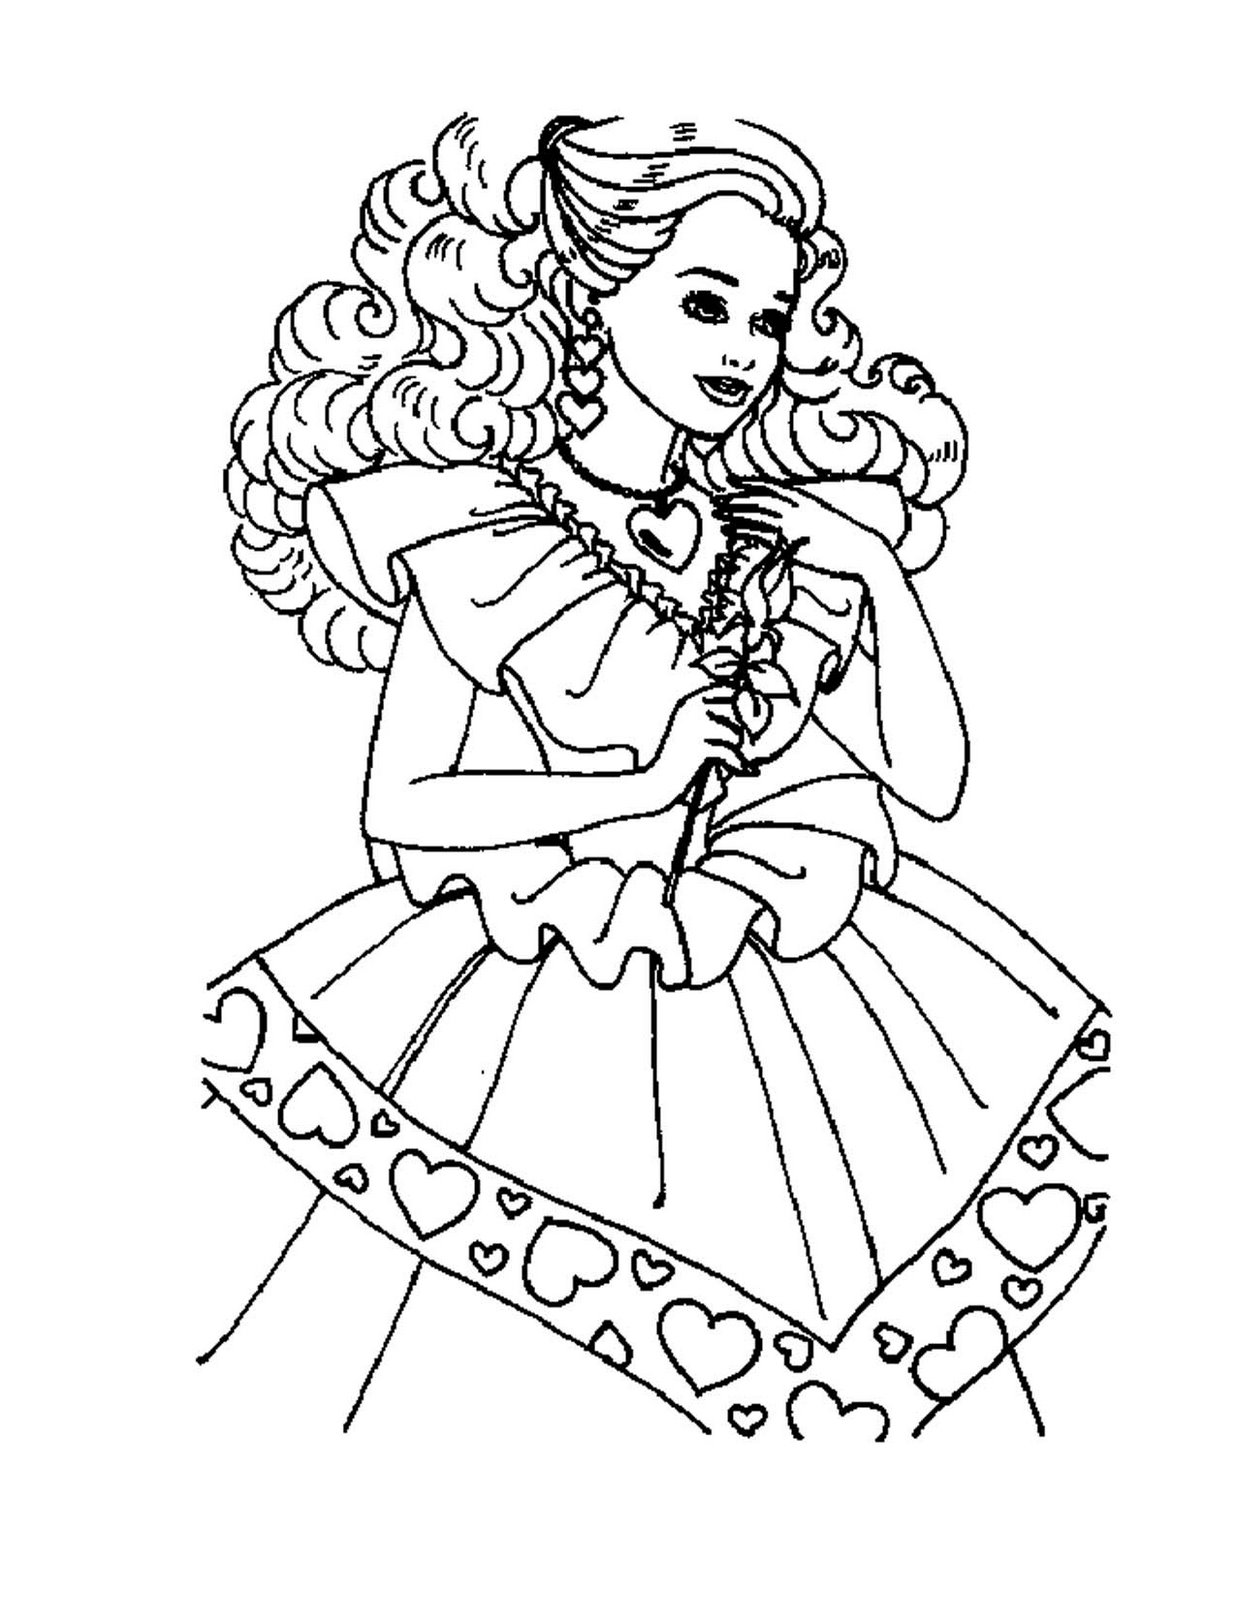 barbie princess coloring book princess barbie coloring pages disney princess coloring book coloring barbie princess